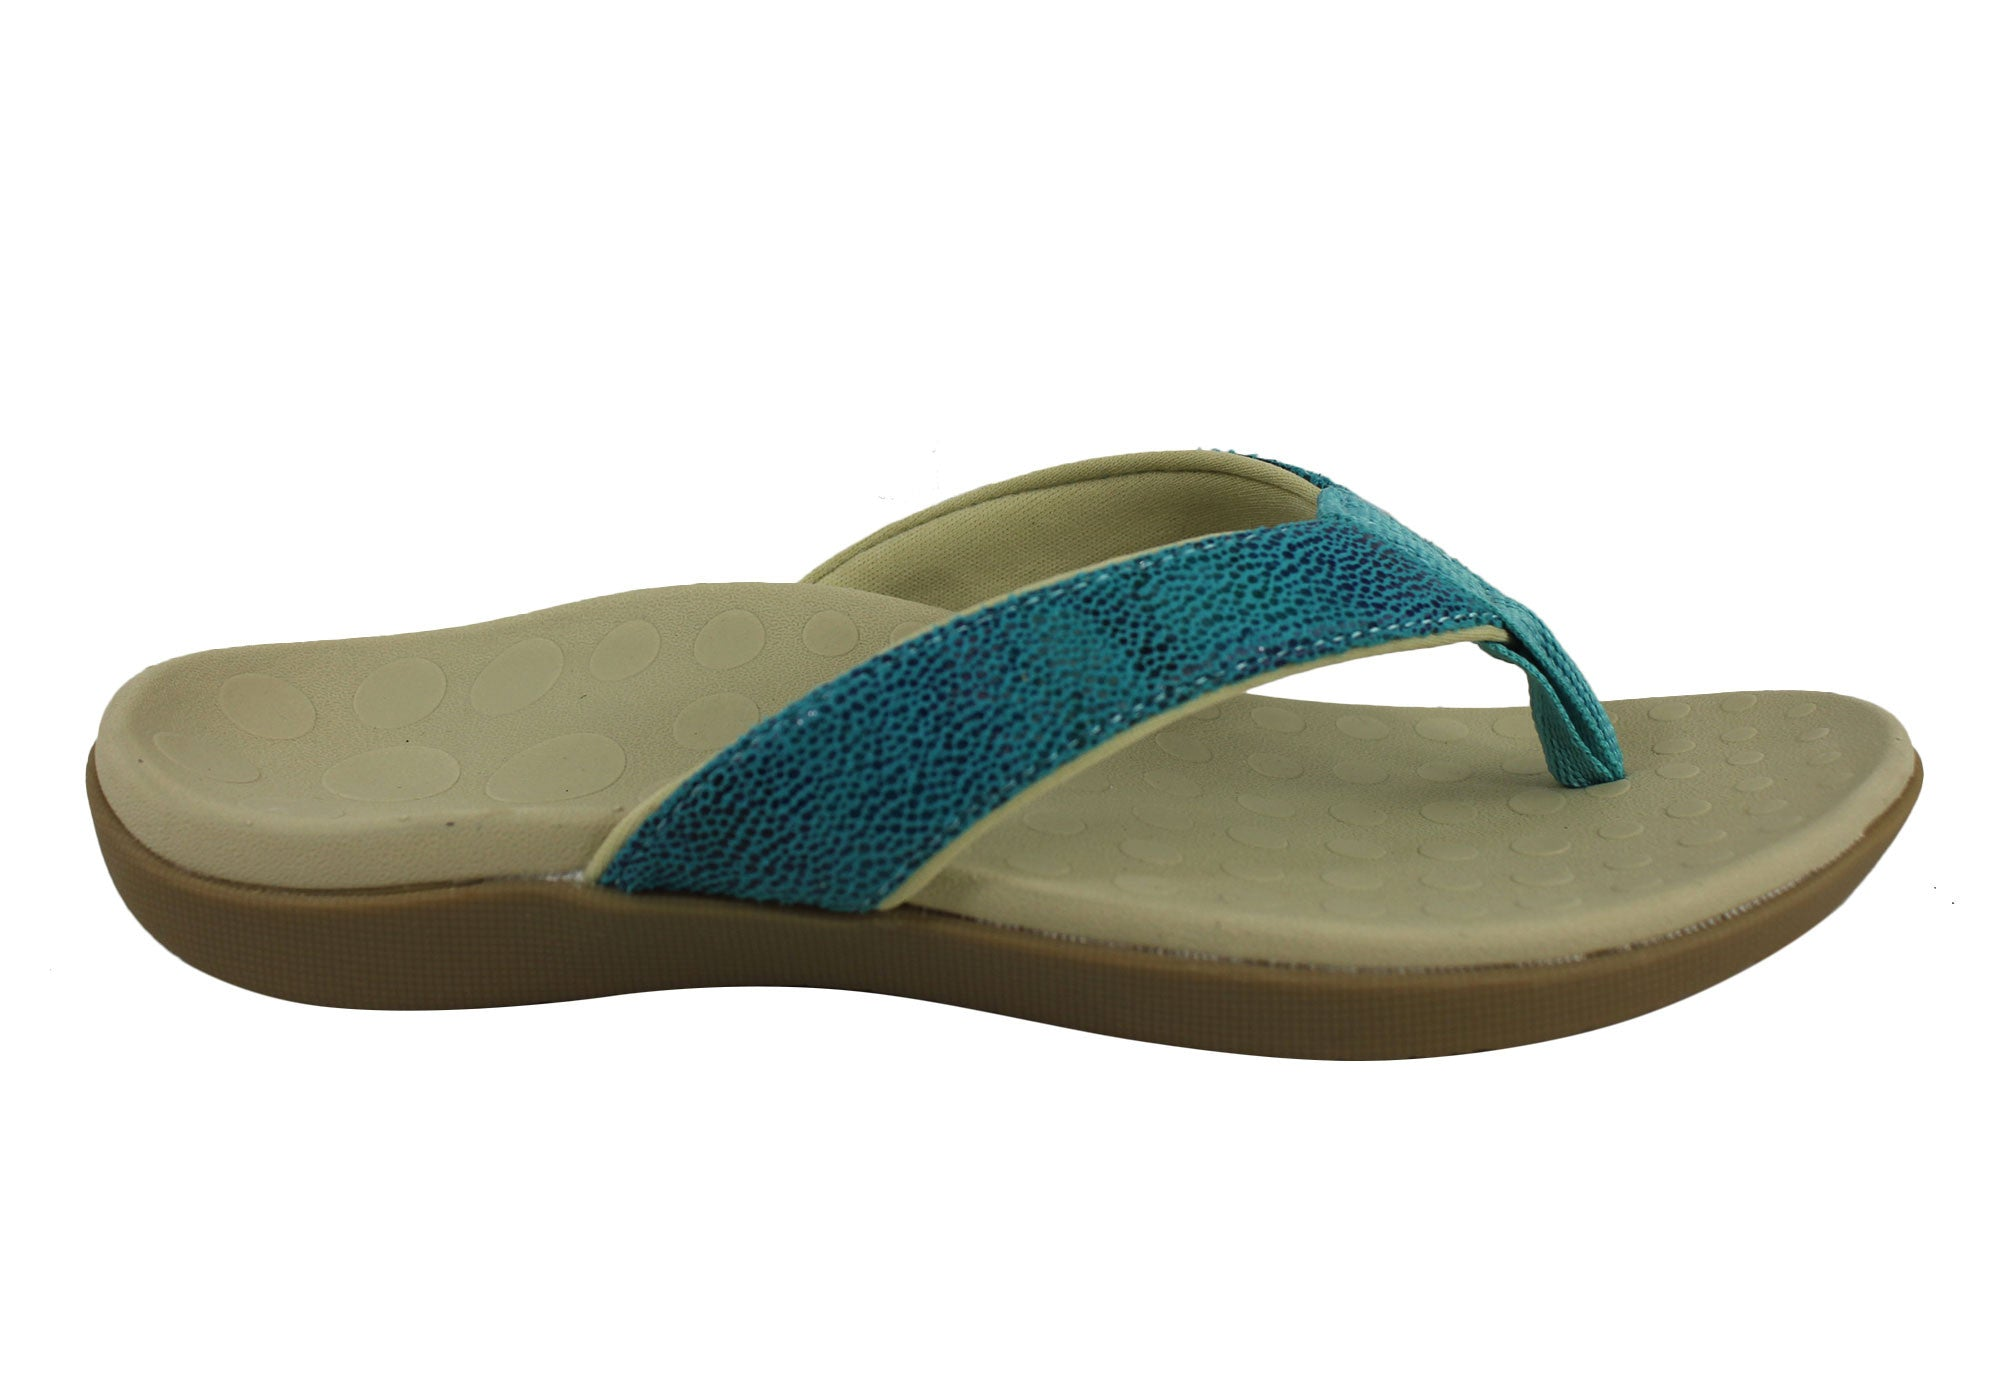 859317897c6 Home Scholl Orthaheel Sonoma II Womens Comfortable Supportive Thongs. Blue  Multi ...